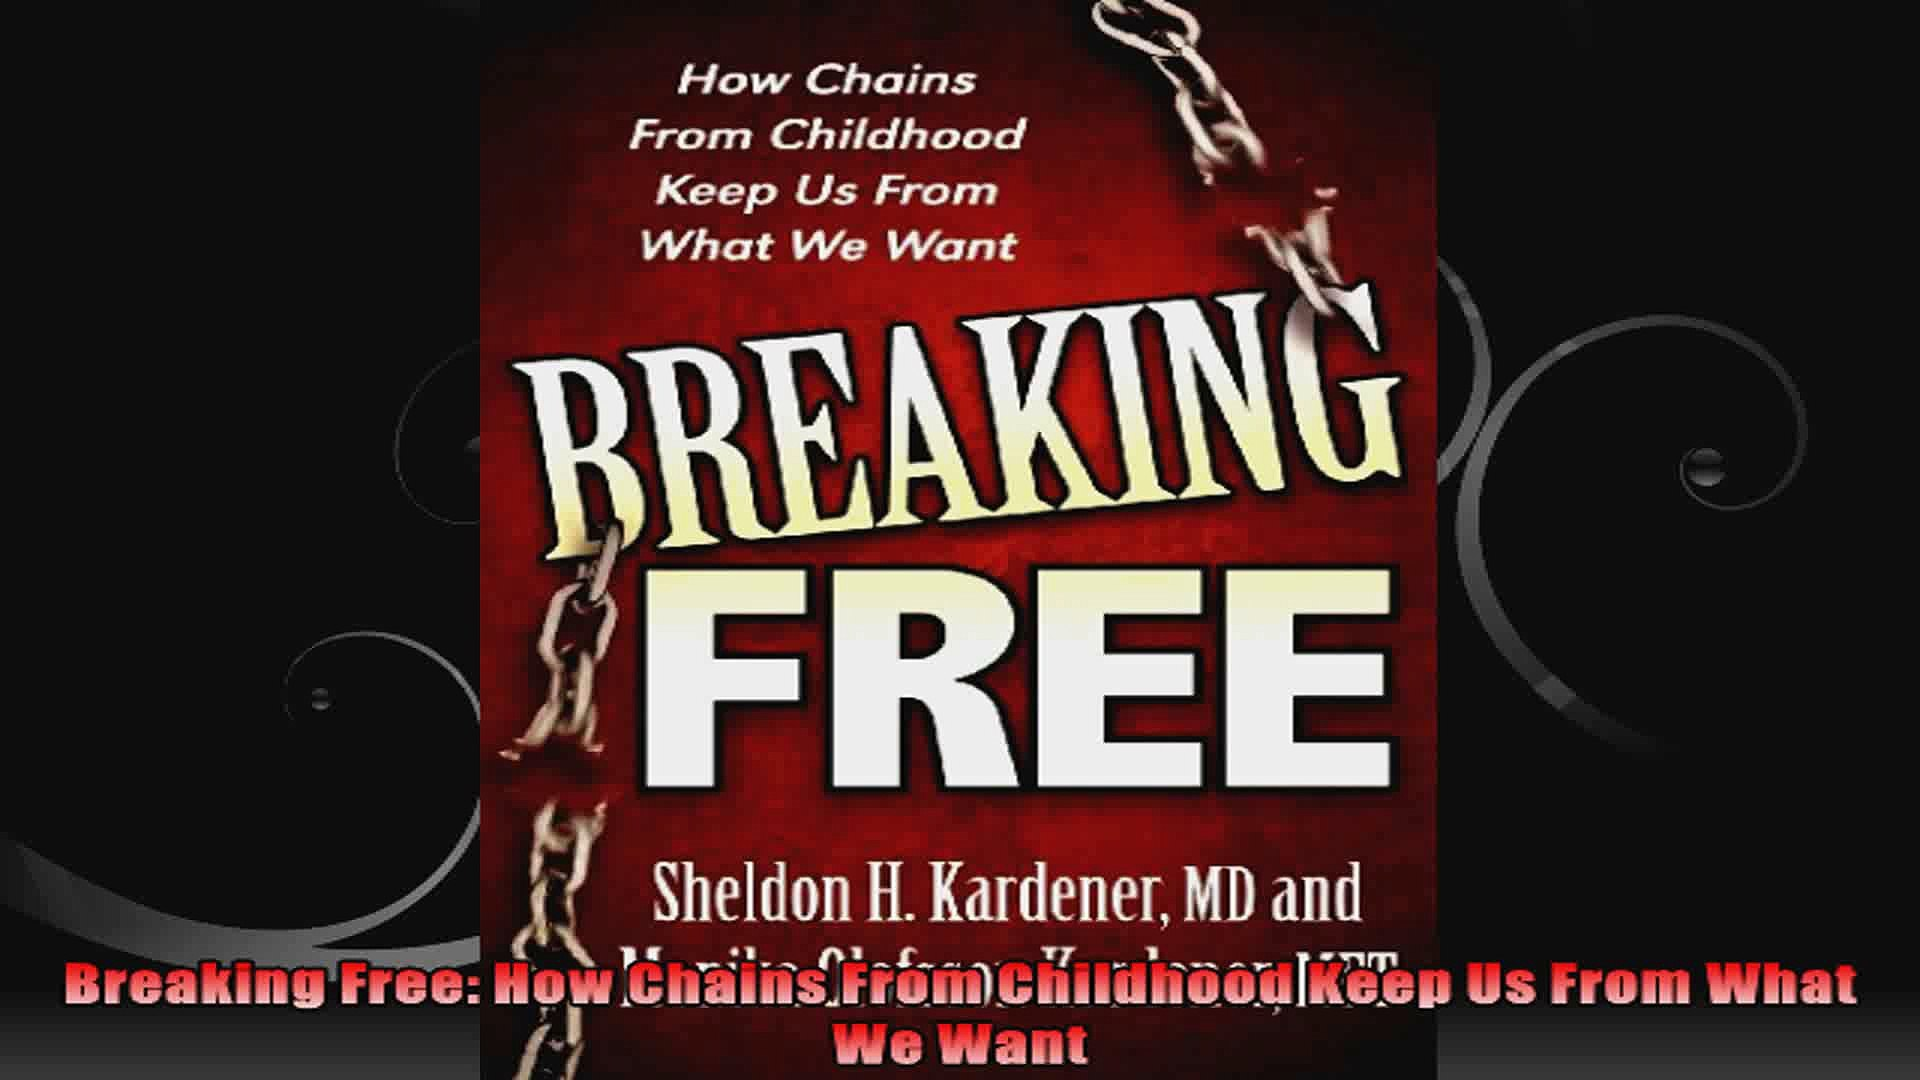 Breaking Free How Chains From Childhood Keep Us From What We Want